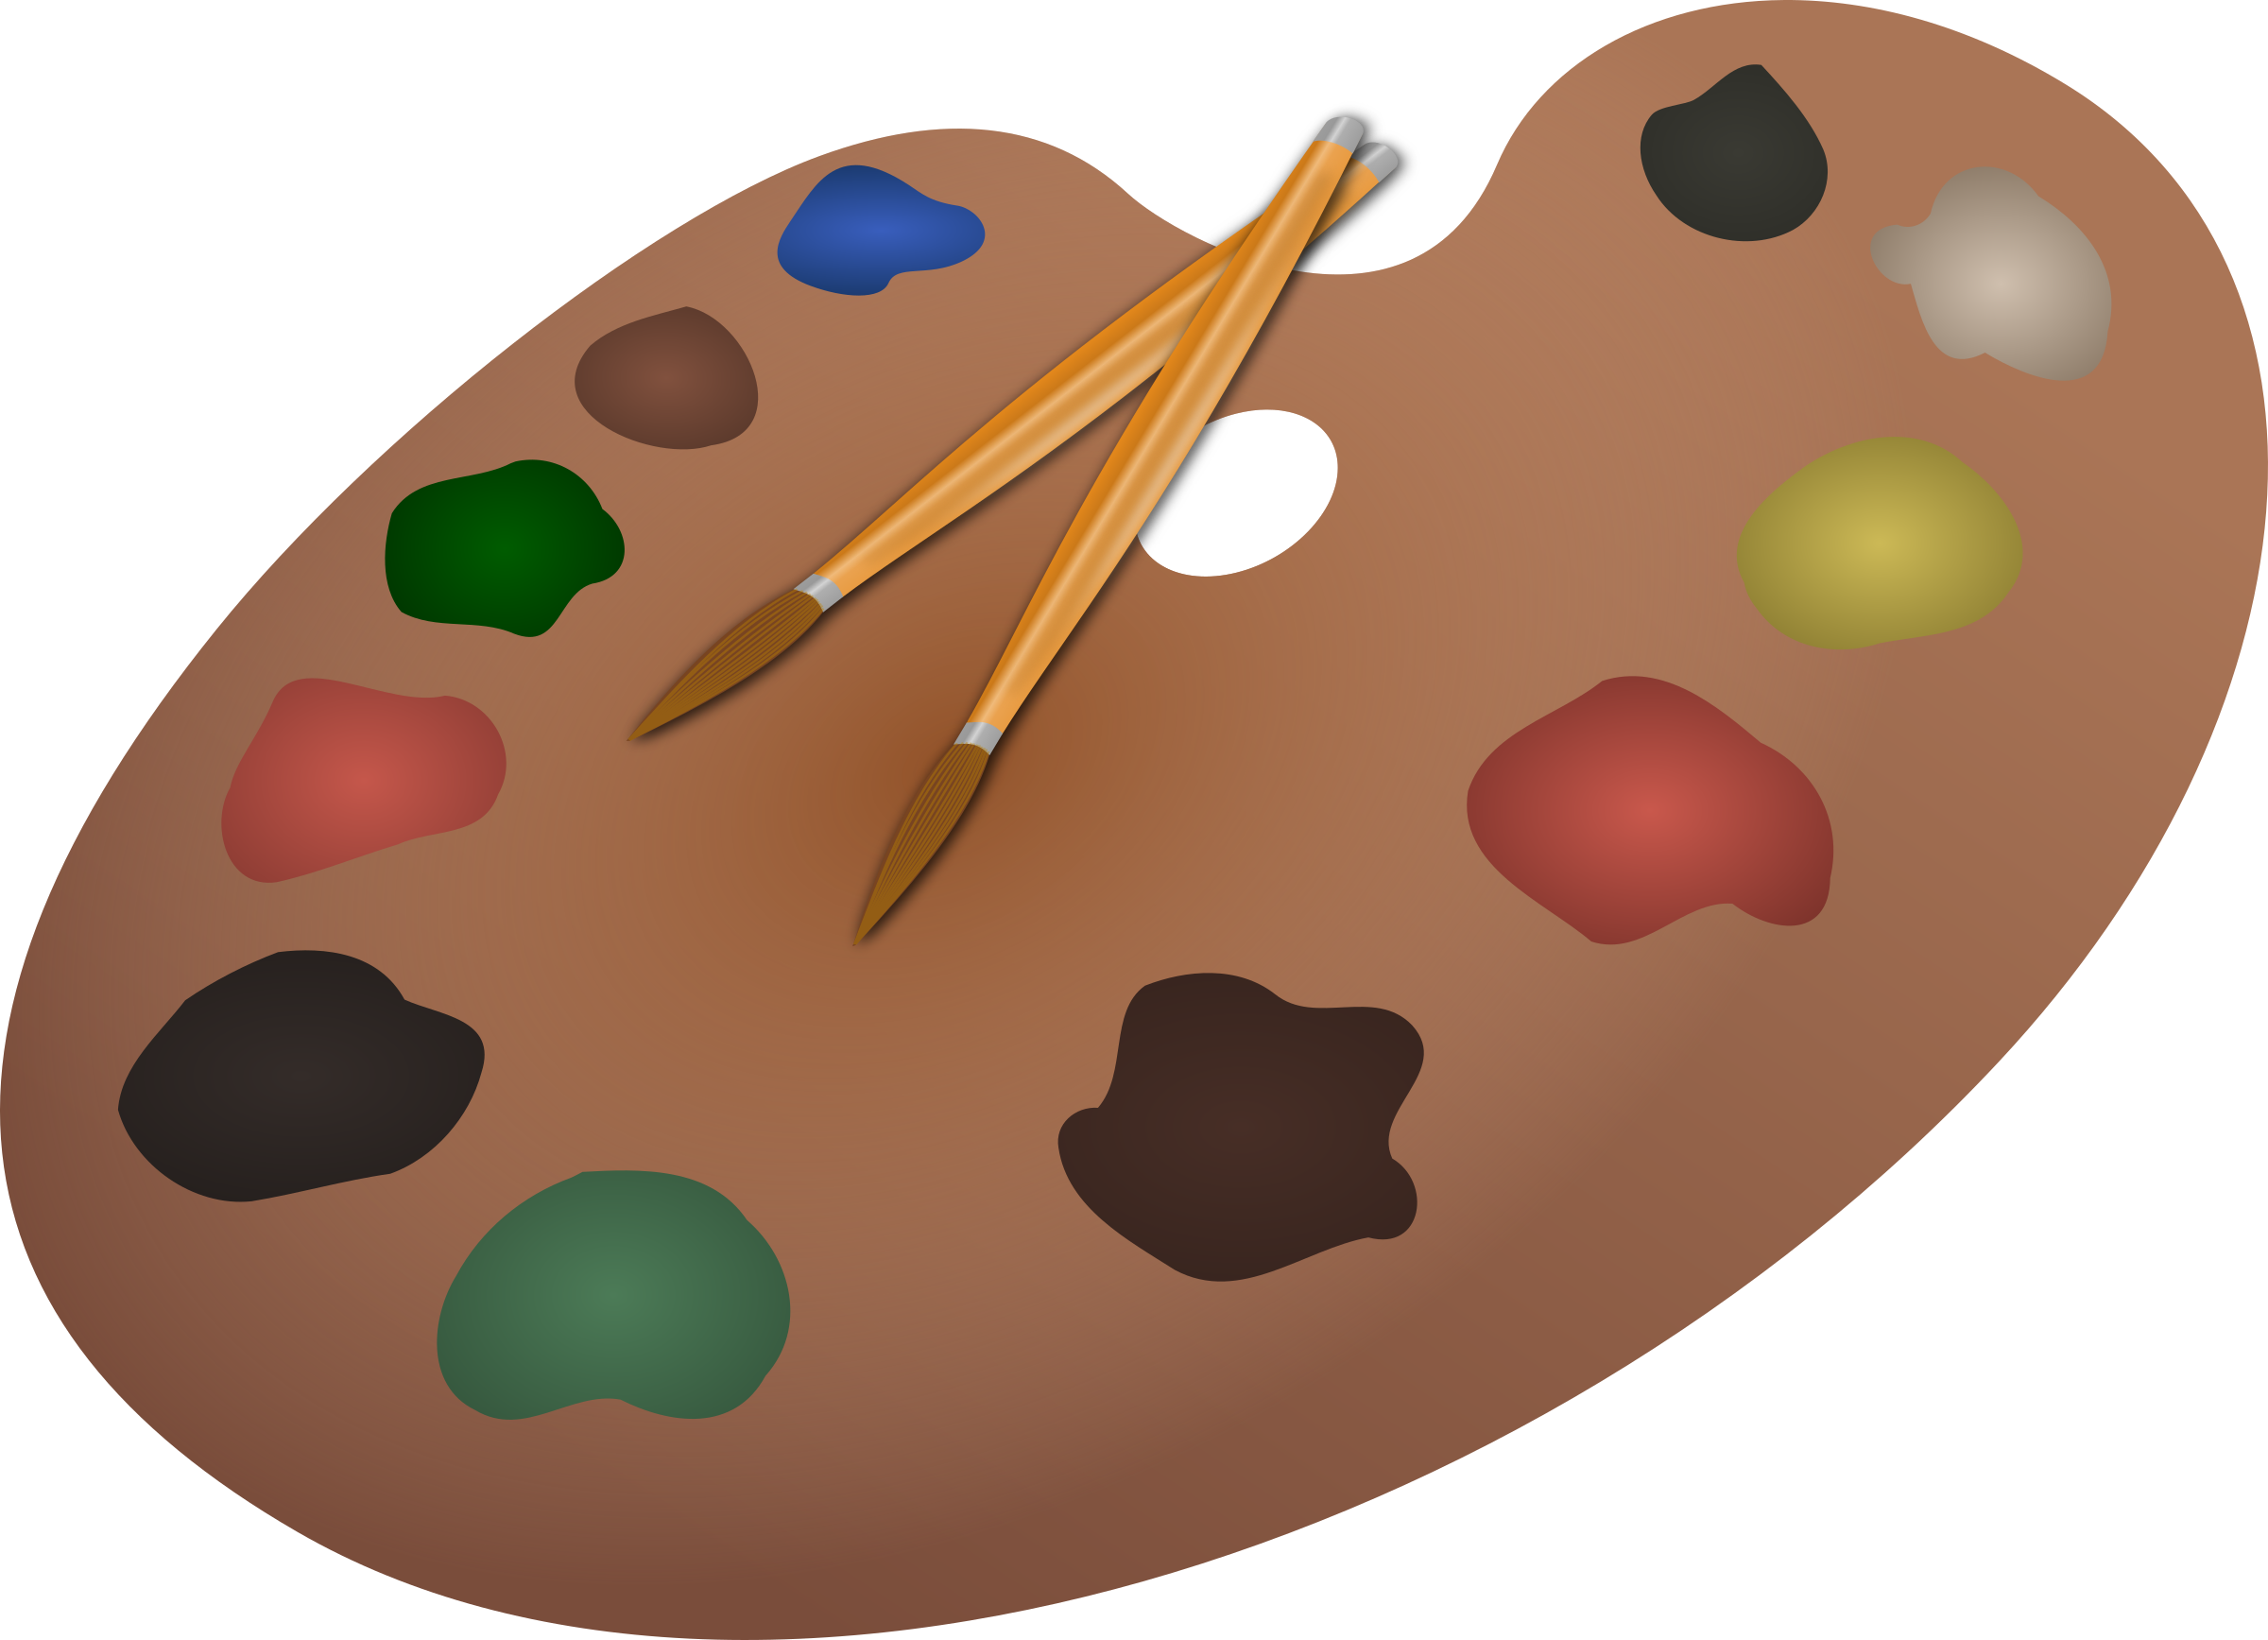 Paintbrush and palette png. Paintbrushes icons free downloads